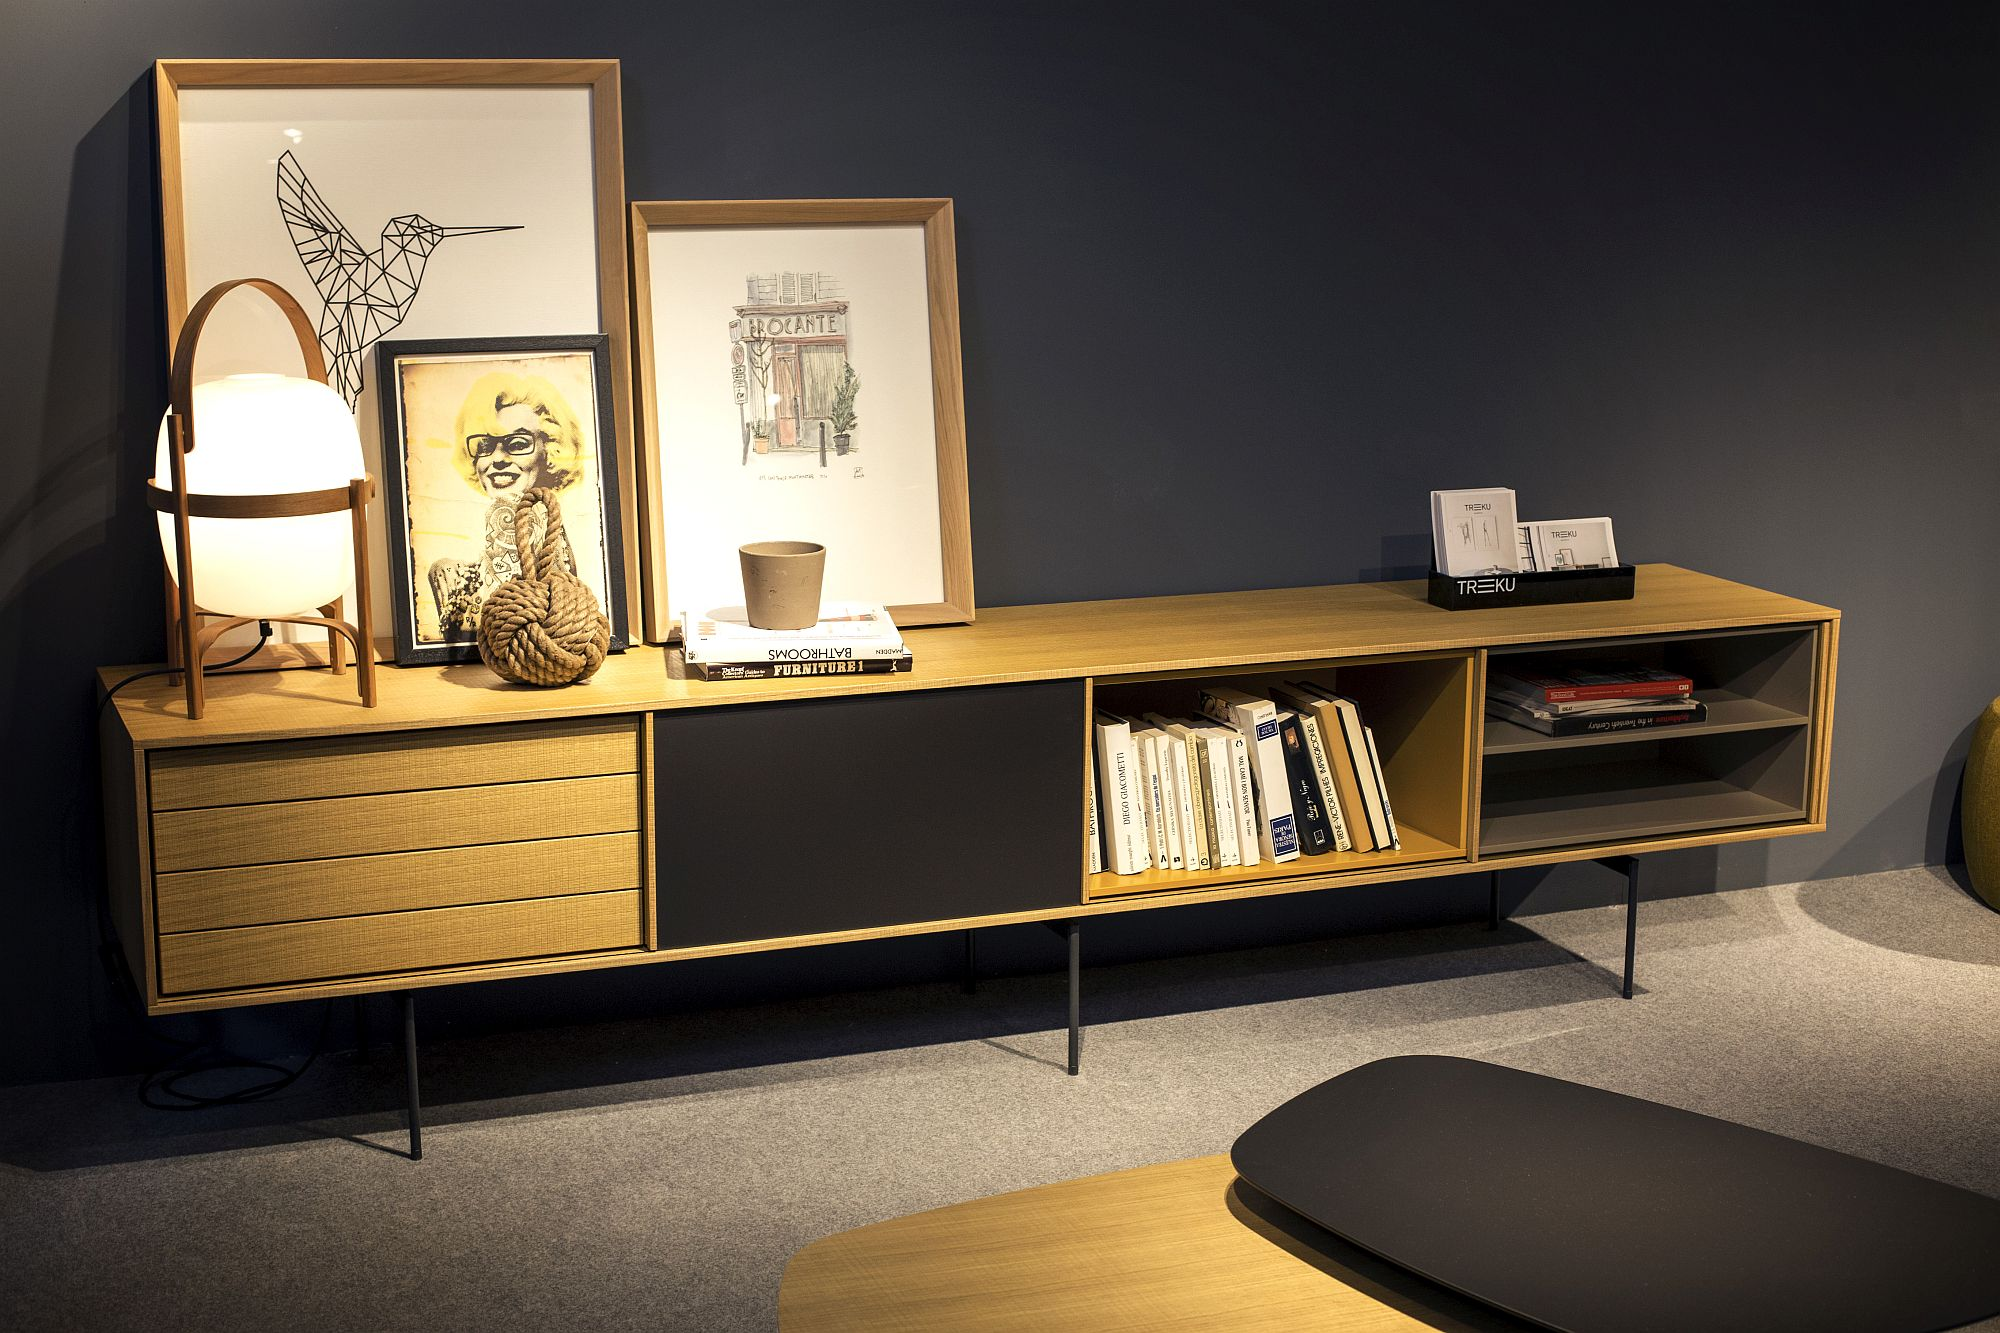 Midcentury-modern-sideboard-can-also-offer-storage-space